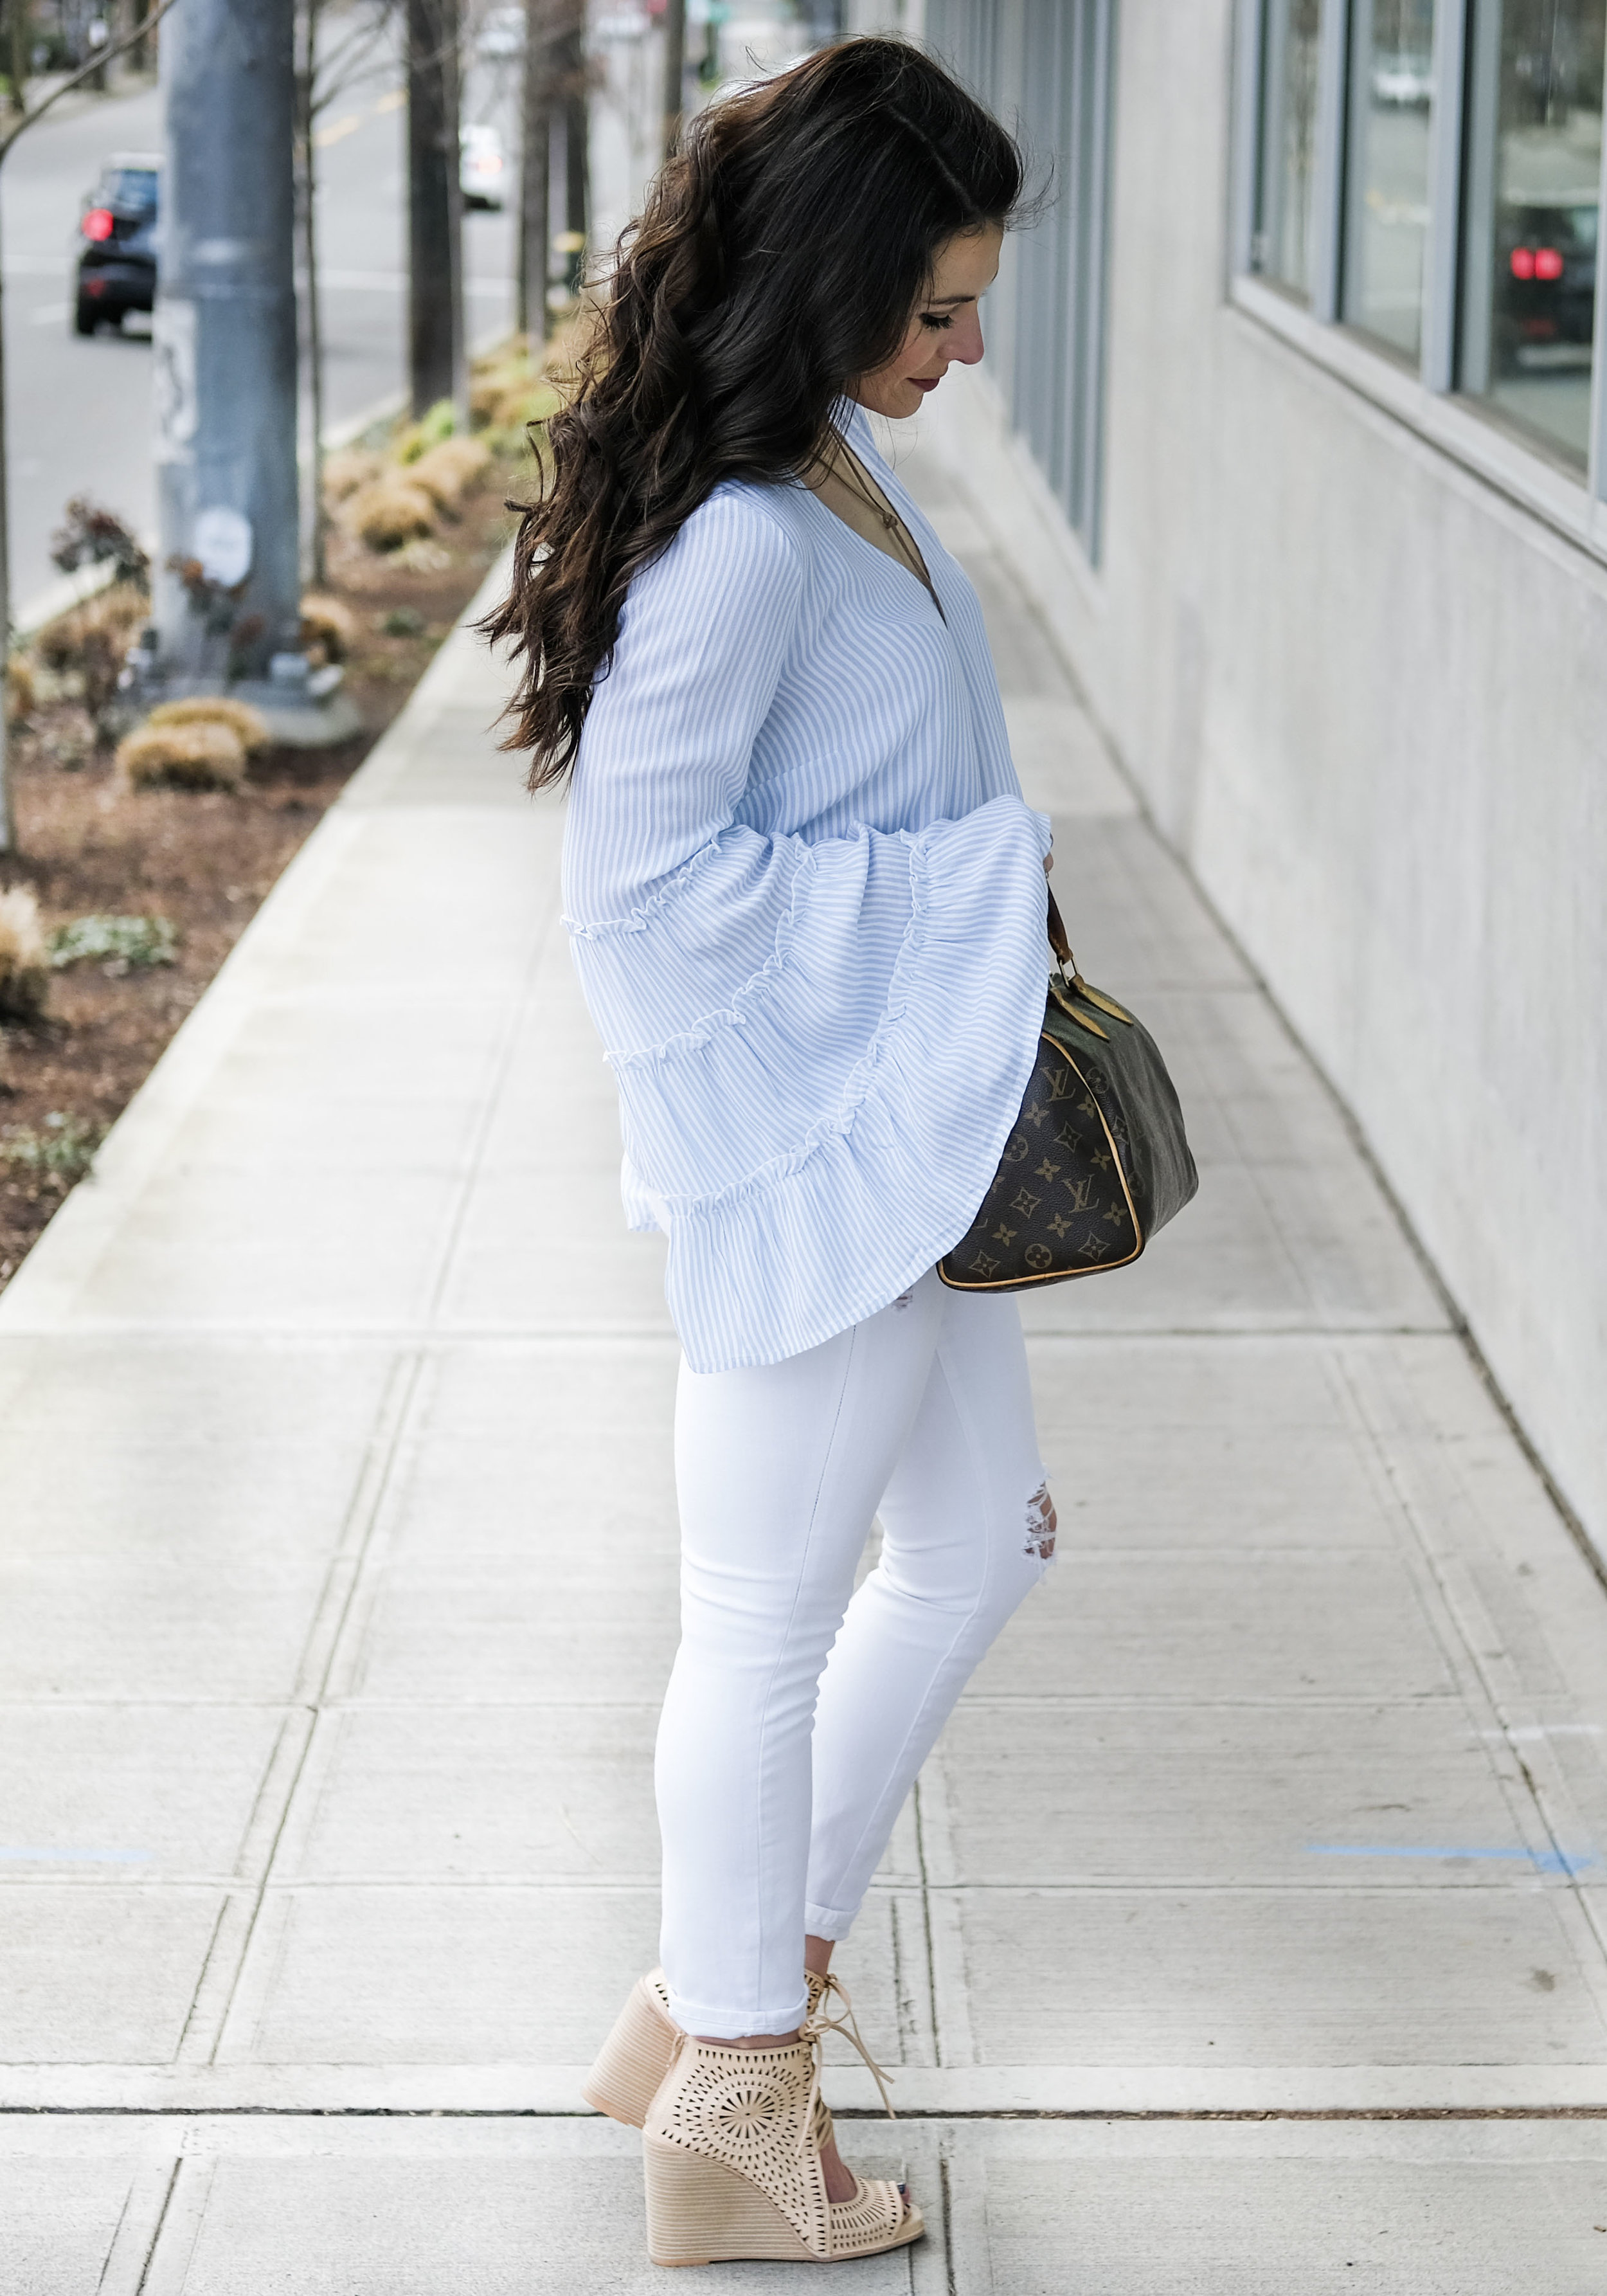 Jeffrey Campbell Rayos Peforated Wedge Sandals, Cute Spring Outfit, Louis Vuitton Speedy 25, affordable spring sandals.